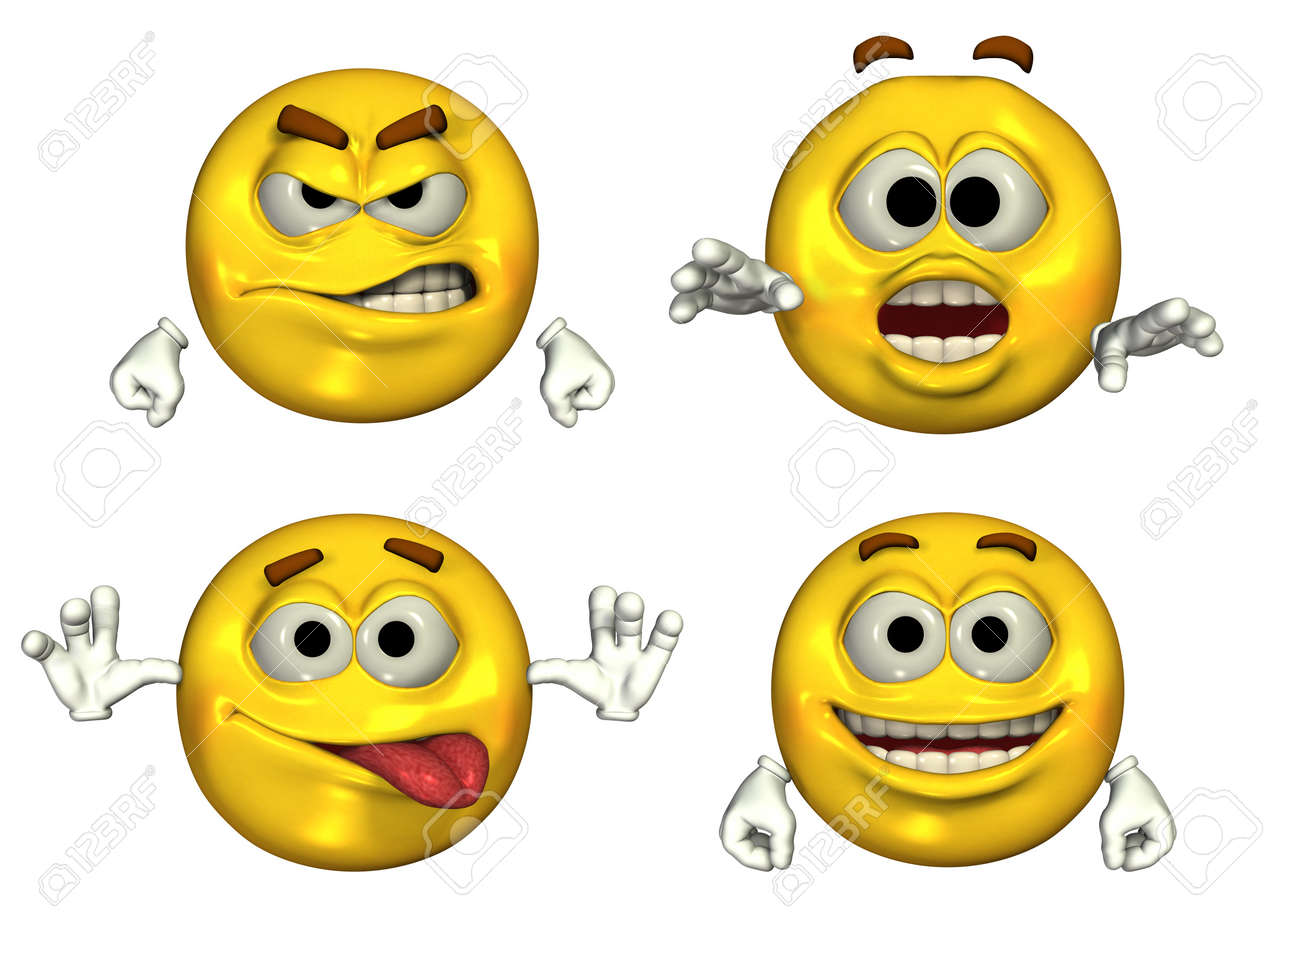 Four Big Emoticons - 3D render Stock Photo - 11711213